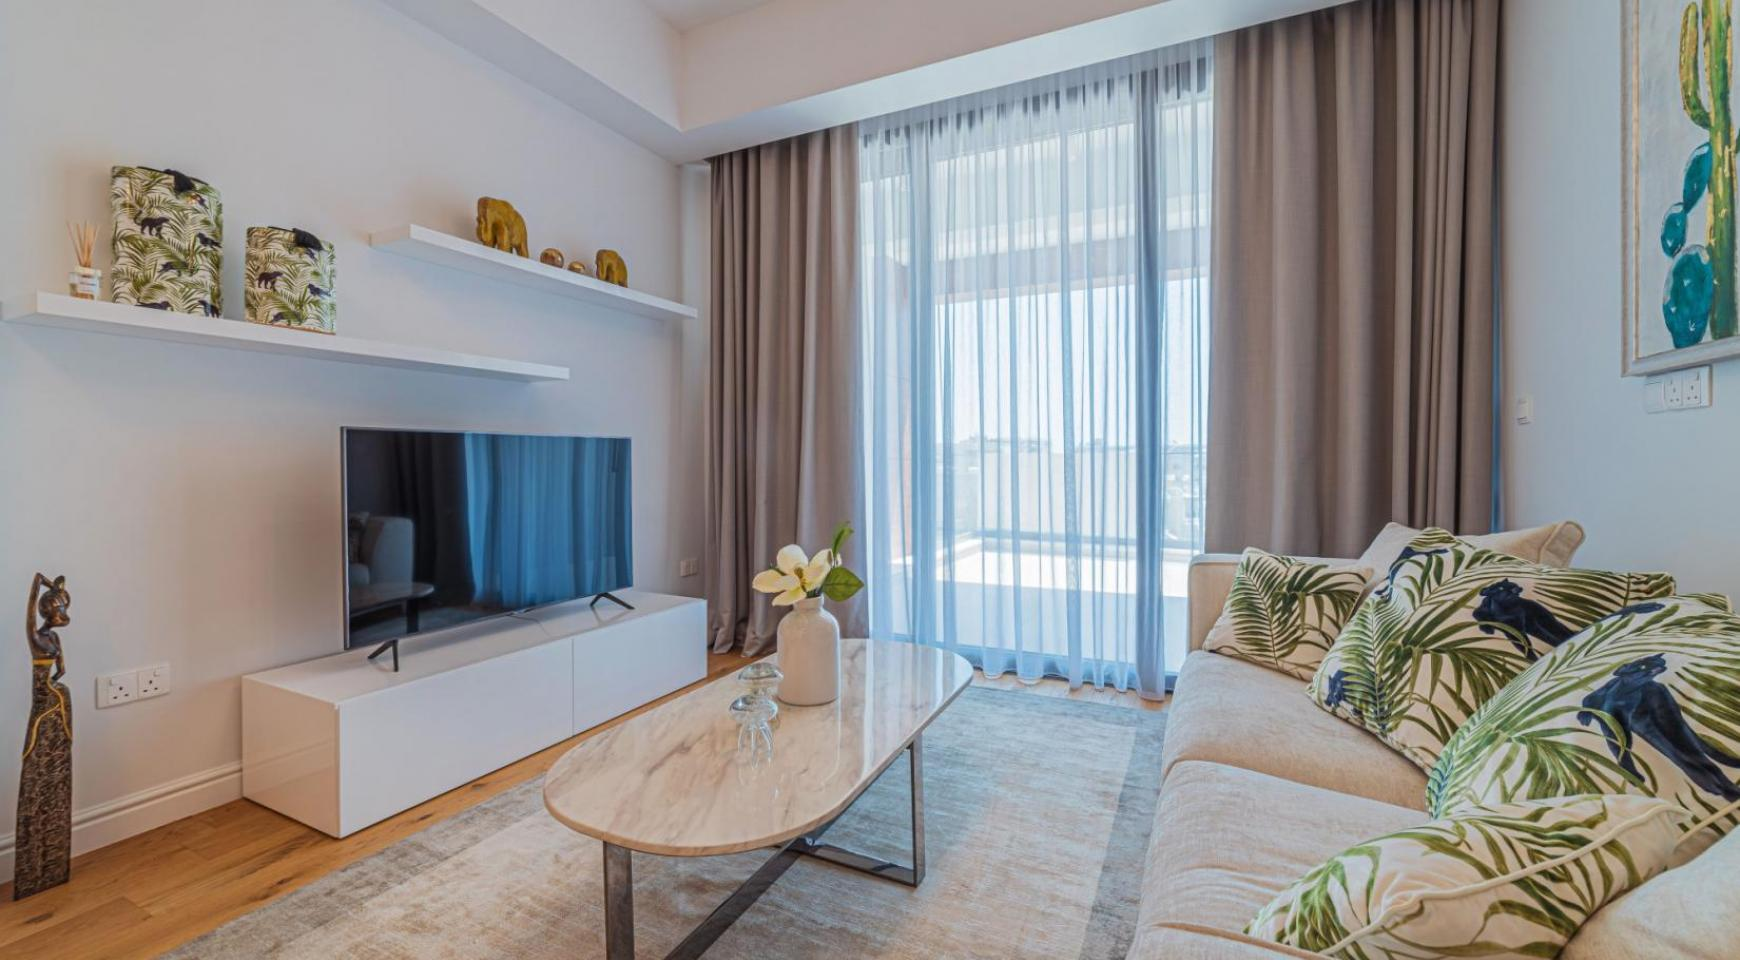 Hortensia Residence, Apt. 203. 3 Bedroom Apartment within a New Complex near the Sea - 12